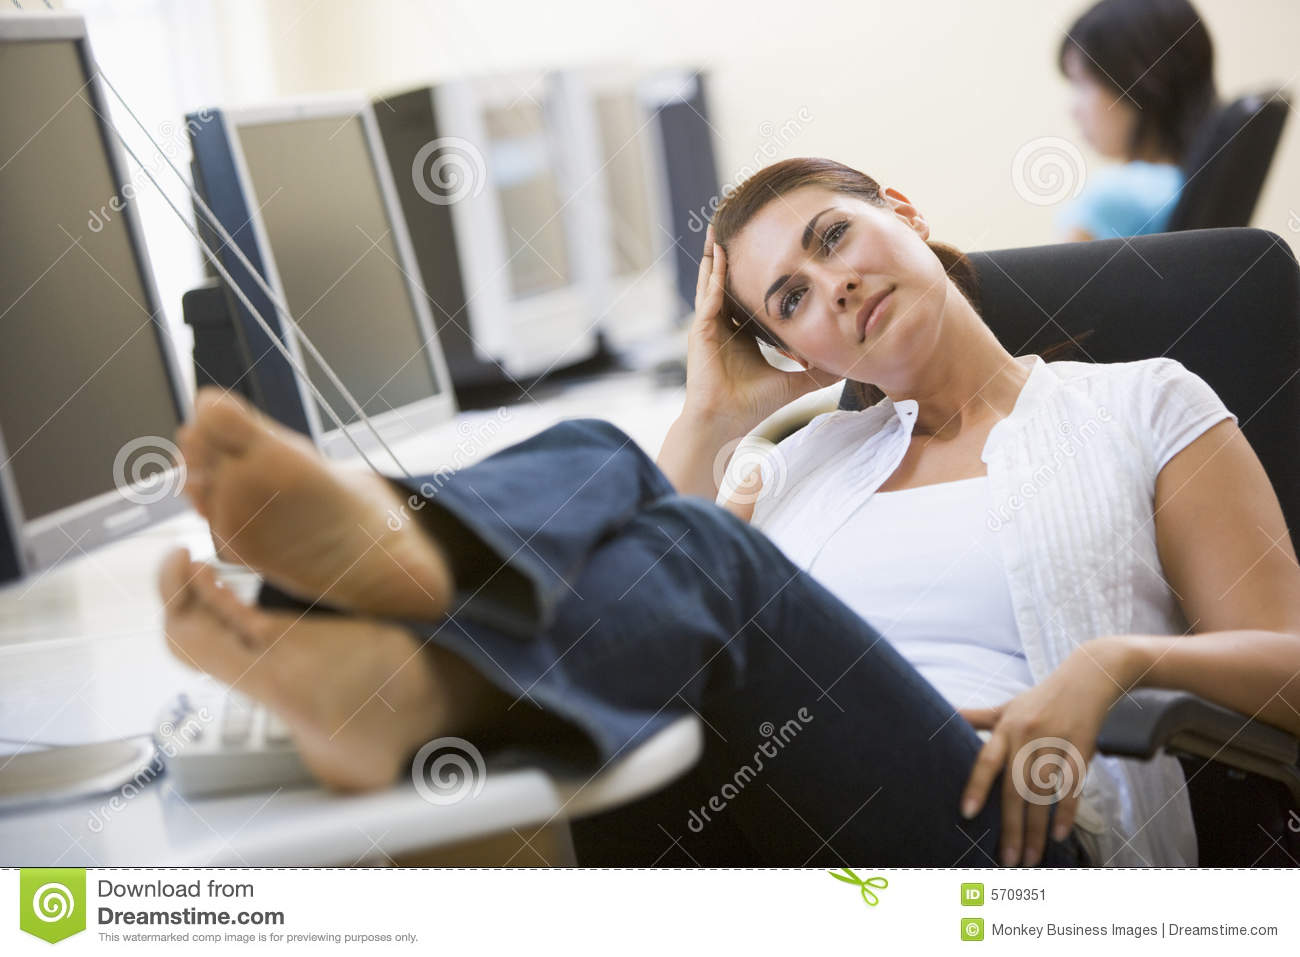 Woman In Computer Room With Feet Up Thinking Stock Image